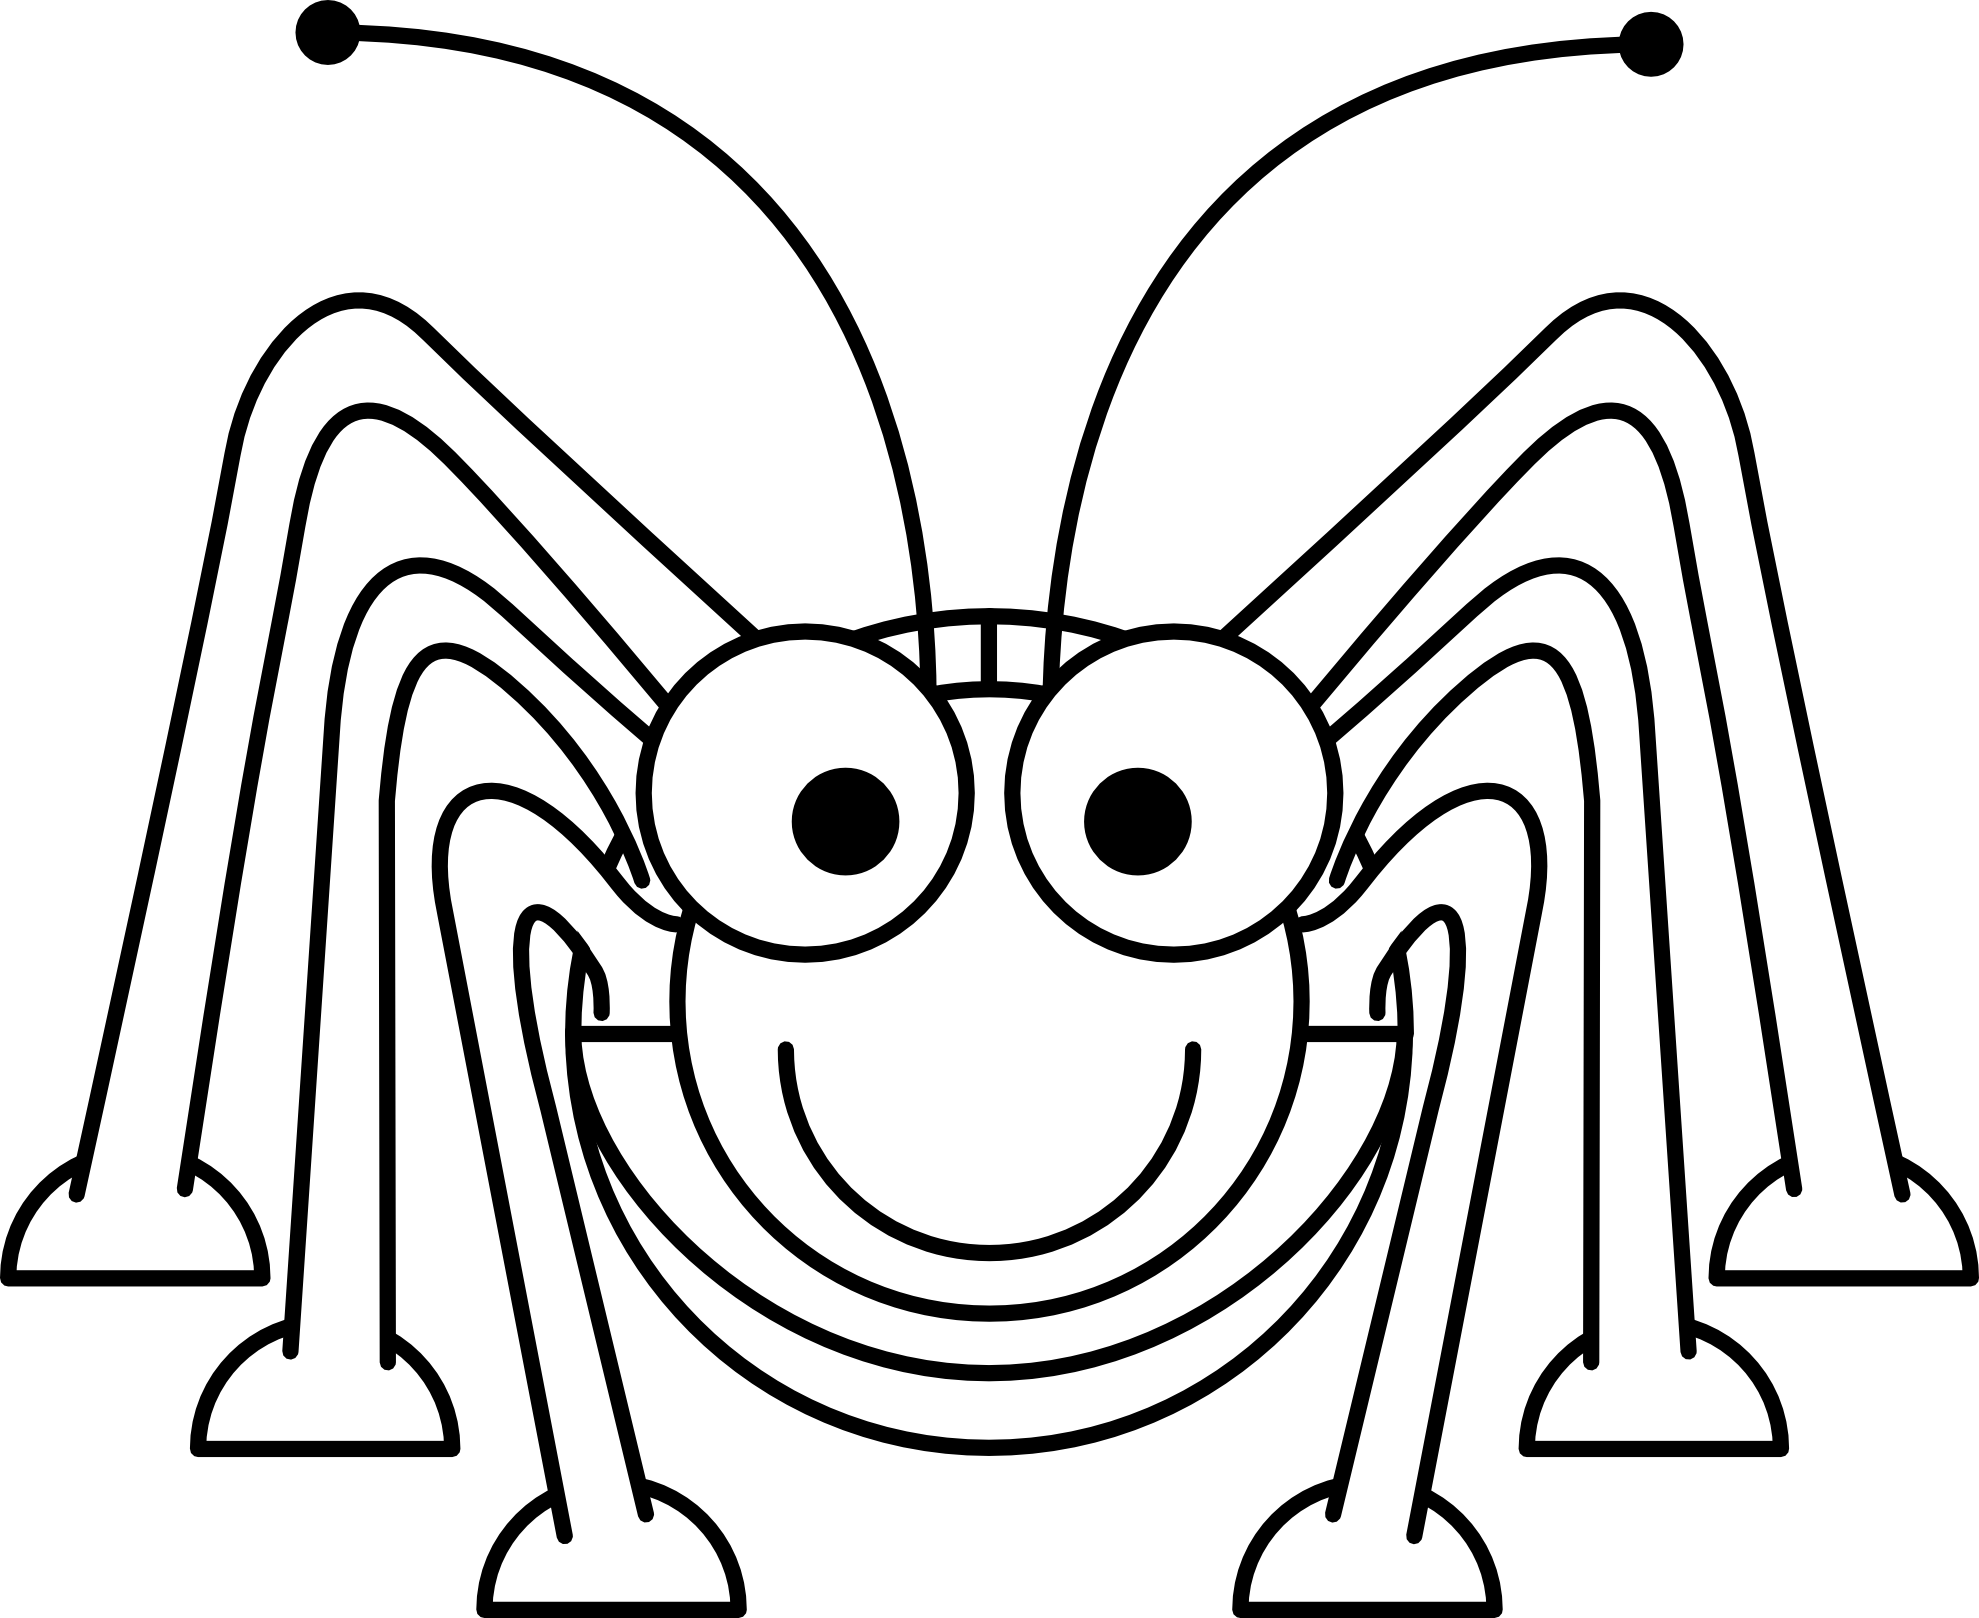 Grasshopper svg #8, Download drawings